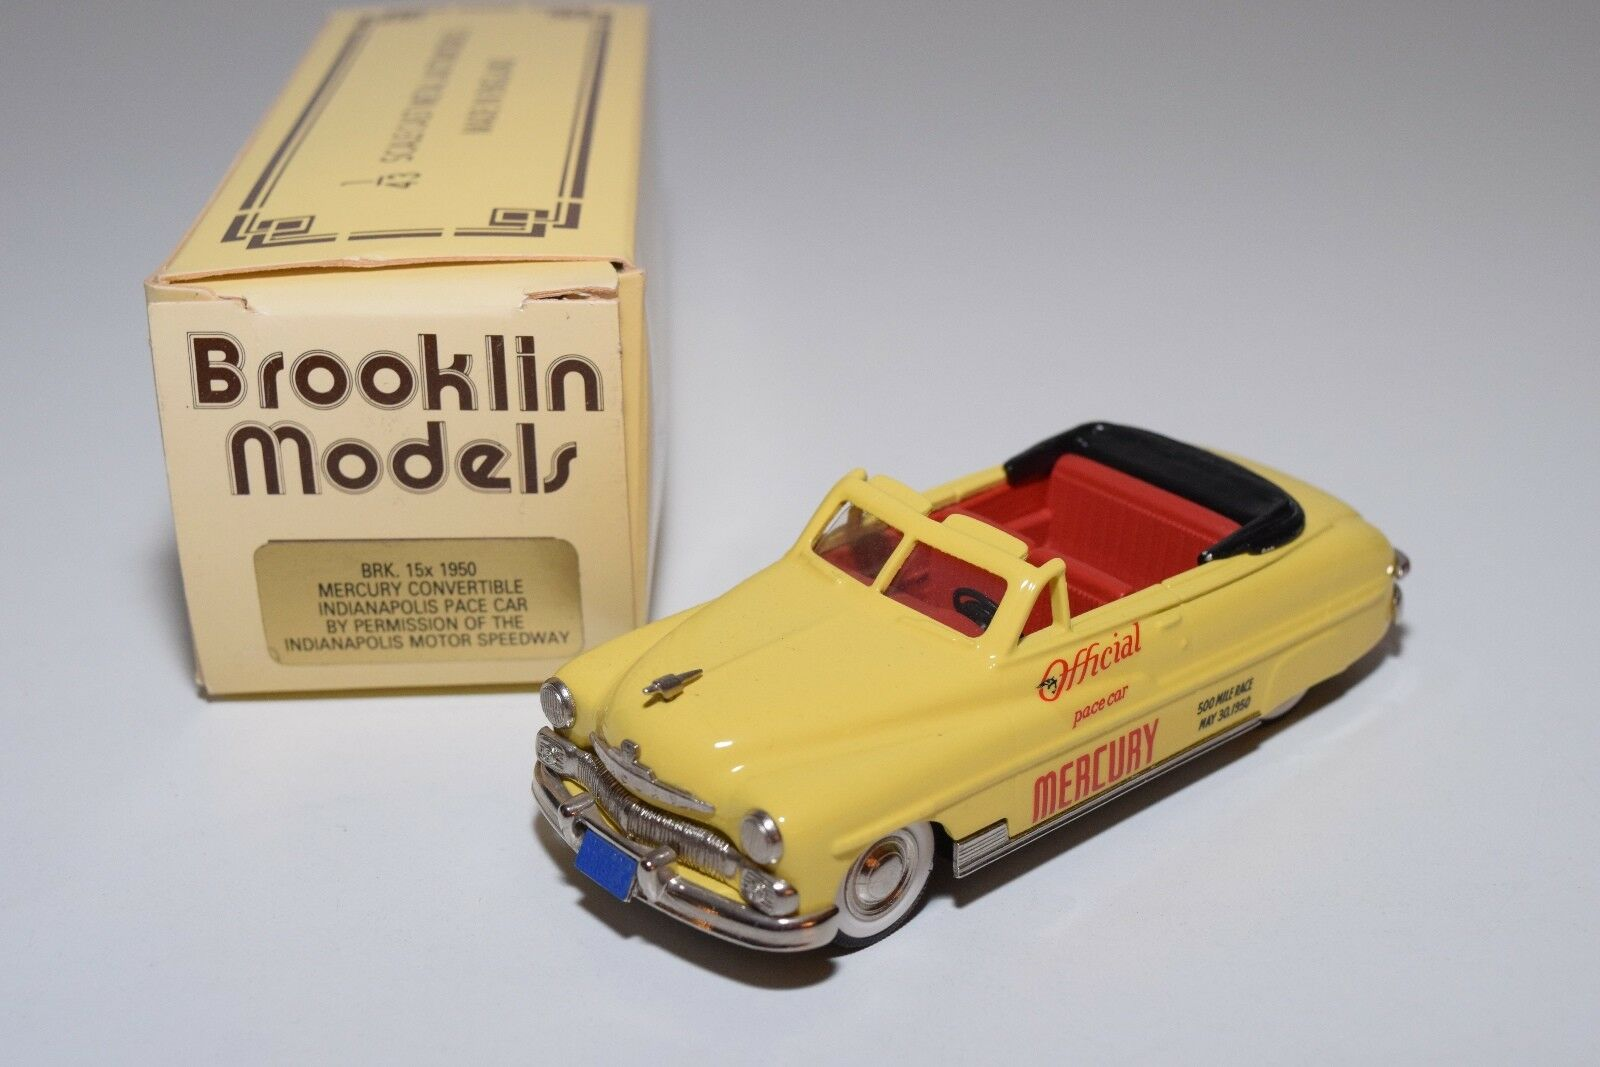 BROOKLIN BRK 15X 15 X 1950 MERCURY CONverdeIBLE INDIANAPOLIS PACE CAR MINTBOXED